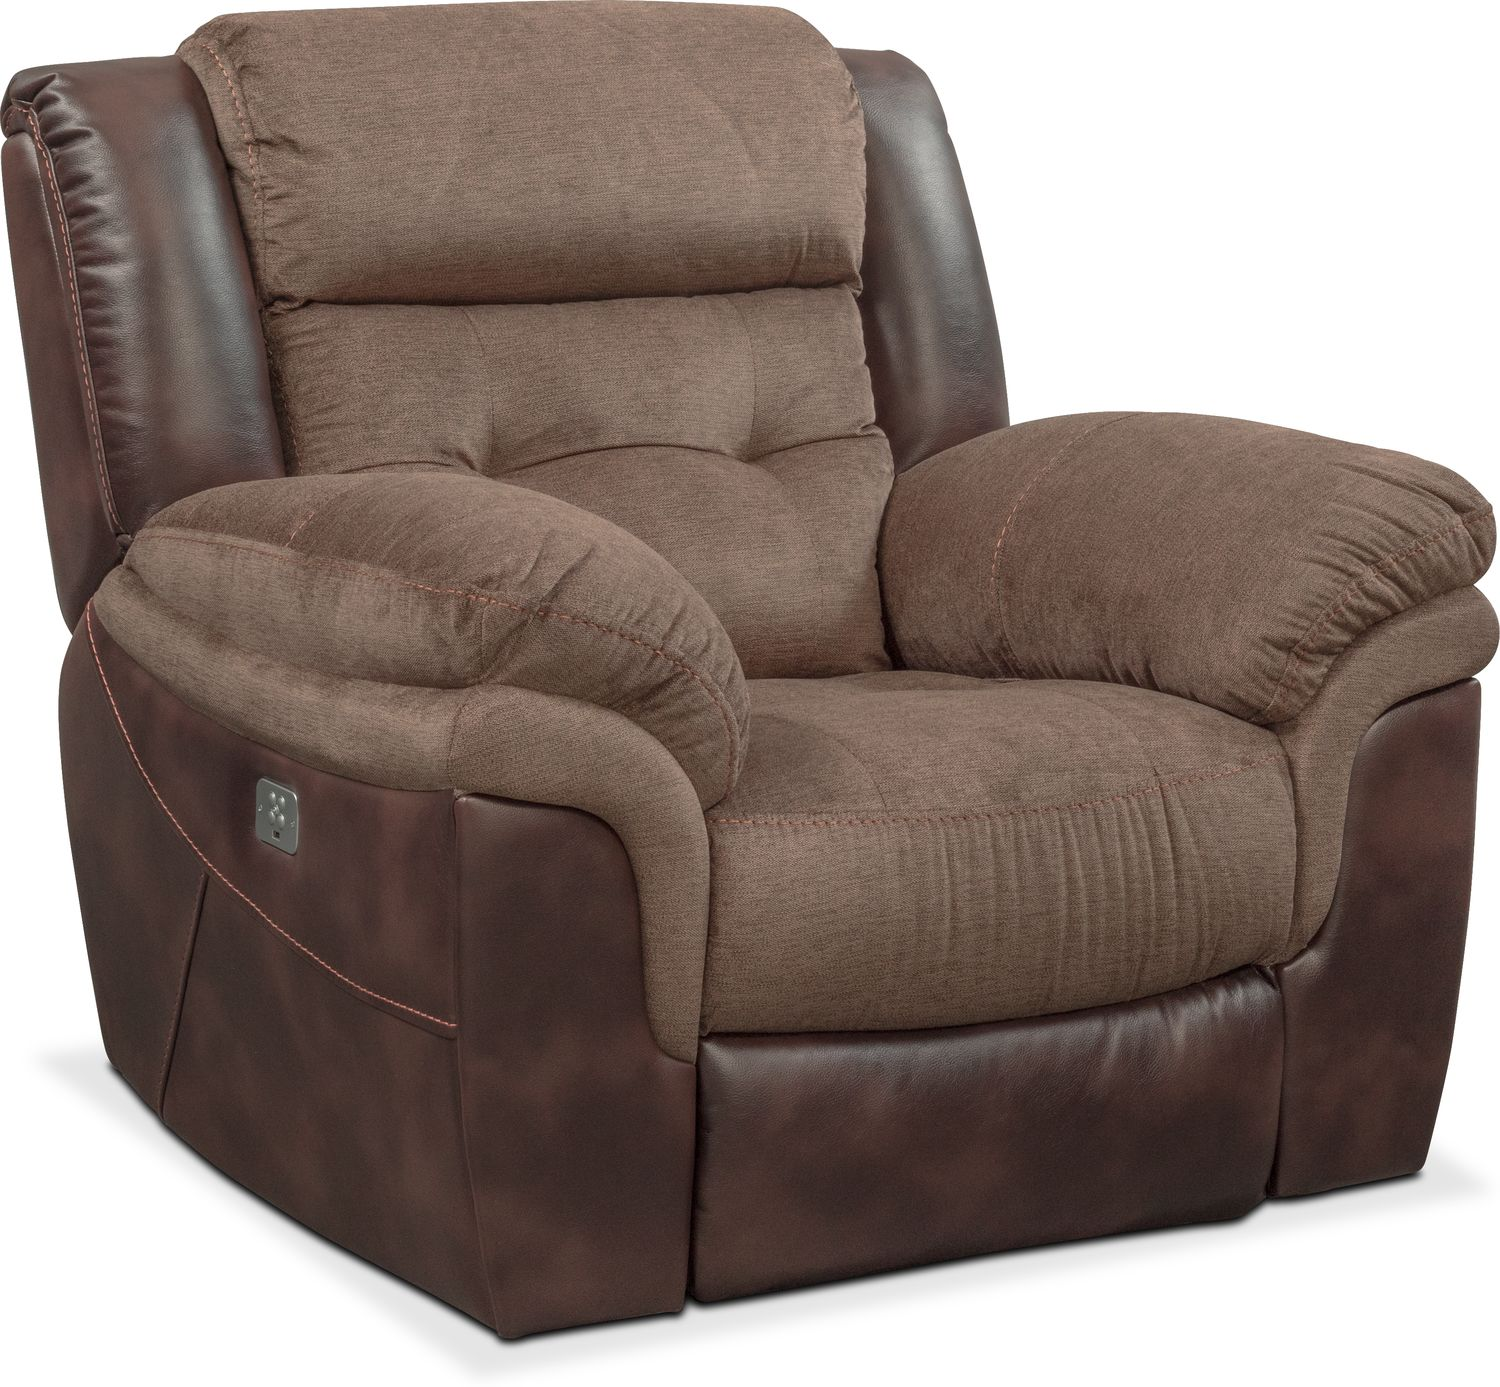 Tacoma Dual Power Reclining Sofa Loveseat And Recliner Set Brown American Signature Furniture